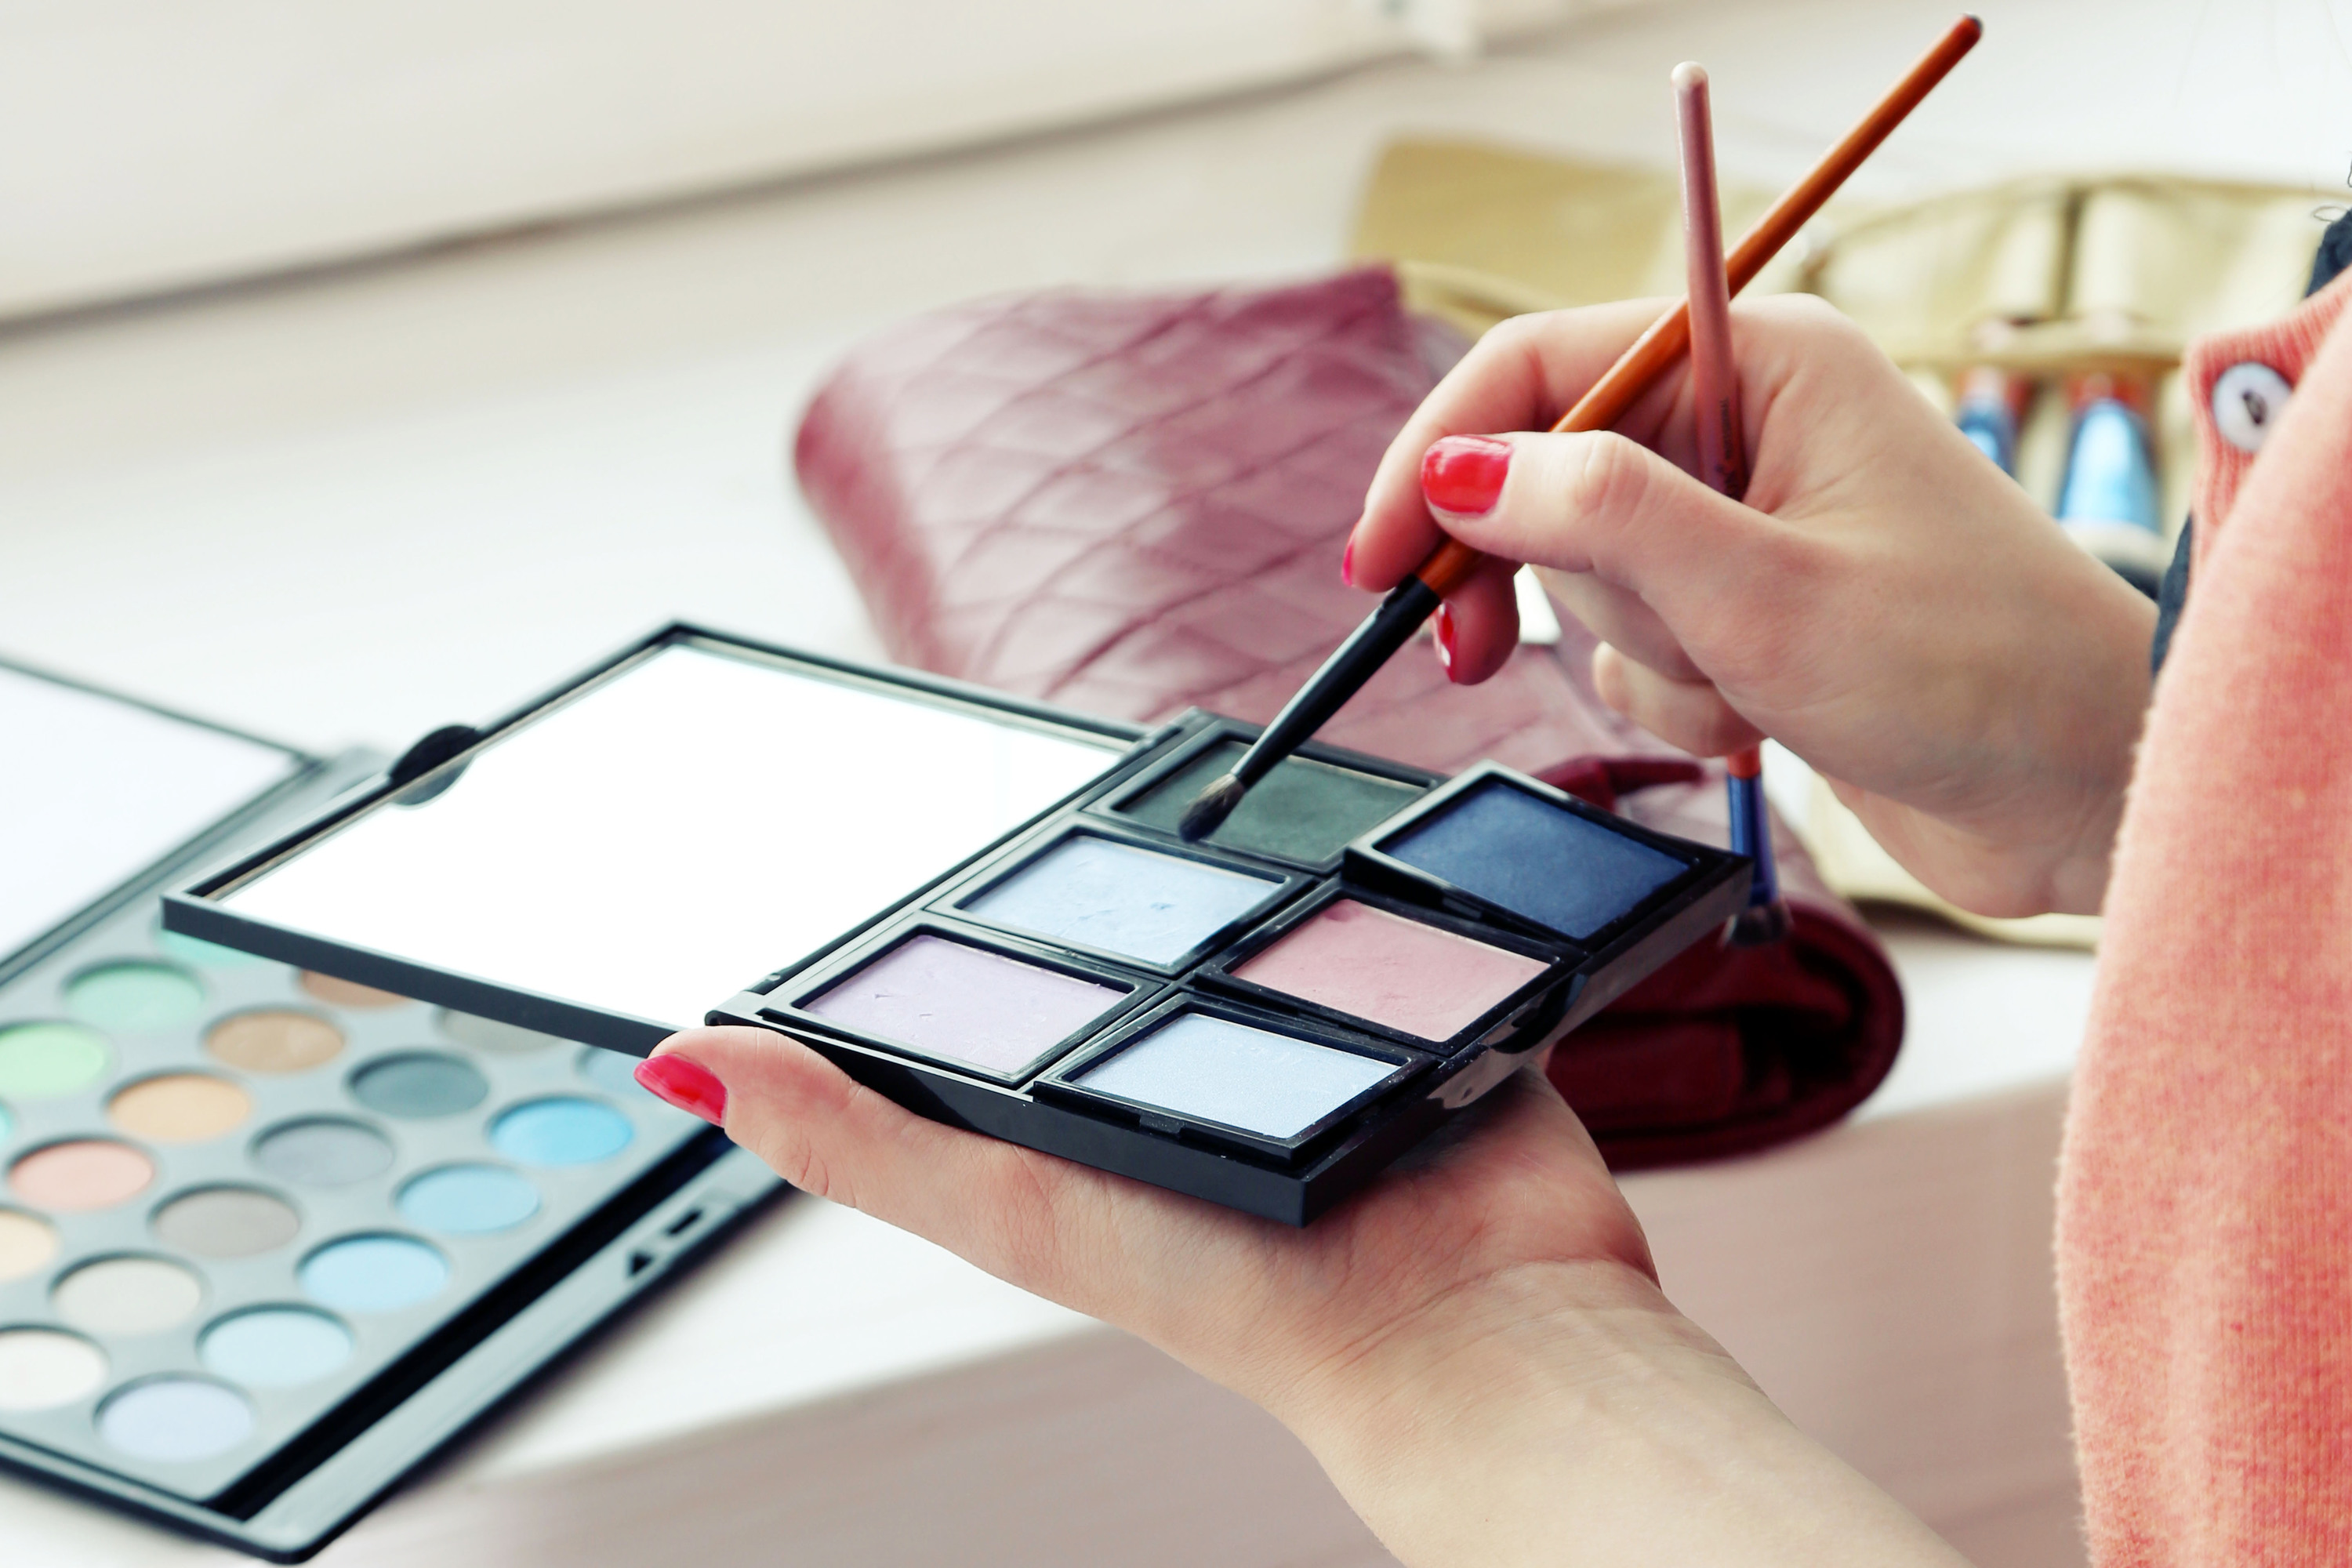 One-on-One Makeup Lessons at Shara Makeup Studio